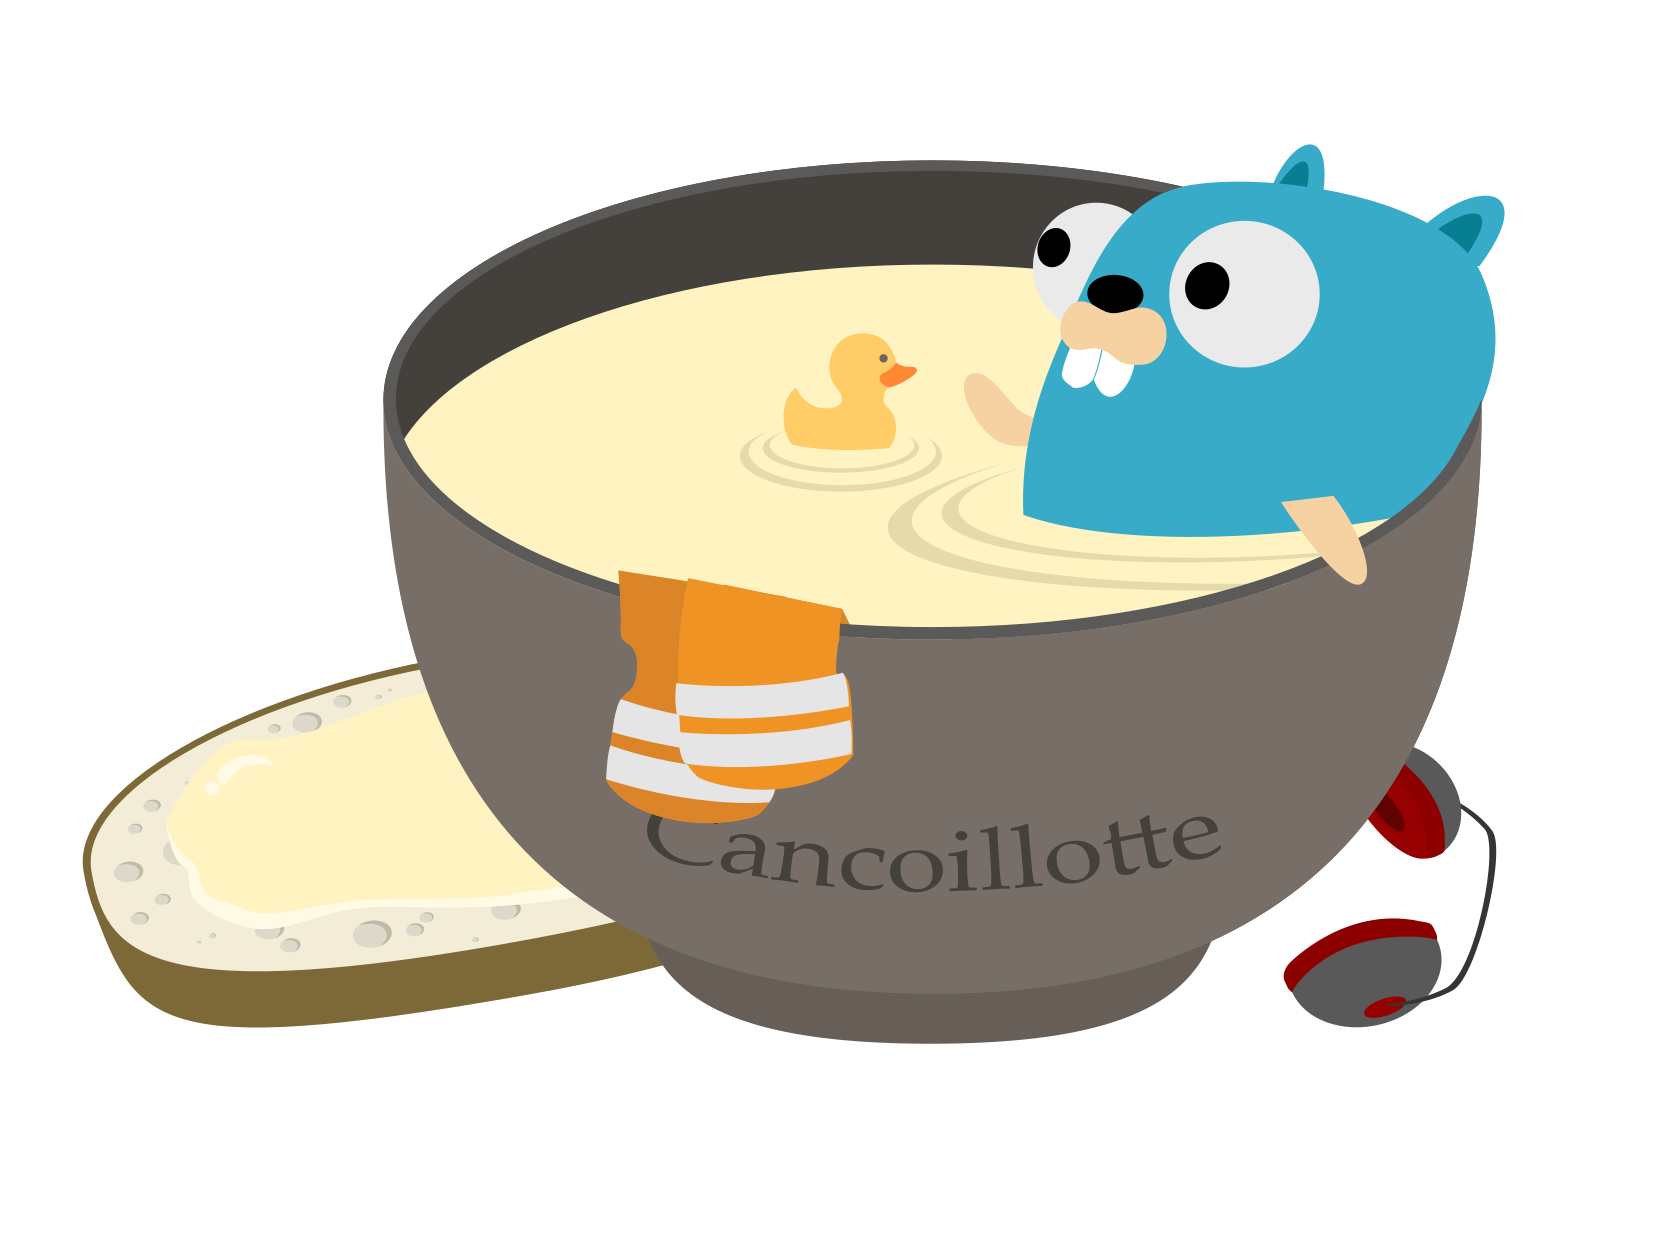 Traefik 1.5 — Cancoillotte Is Here!